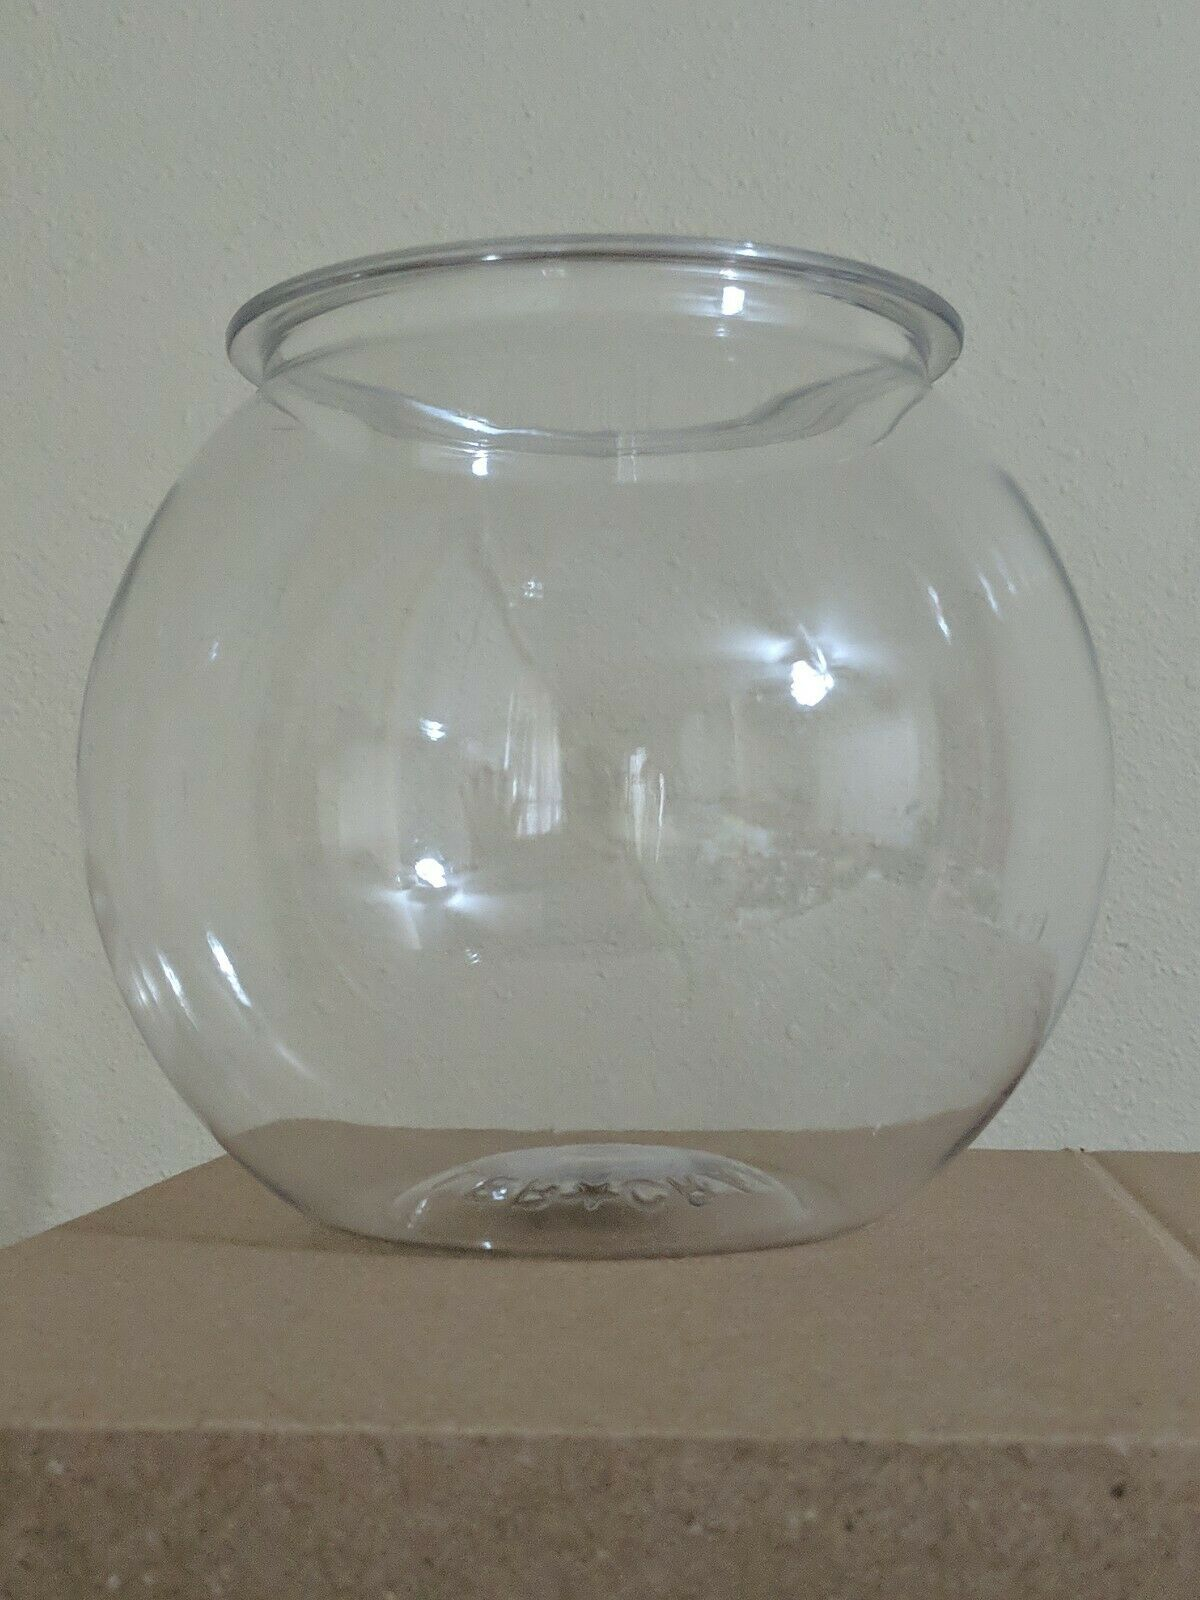 Koller Products 1-Gallon Fish Bowl with LED Lighting